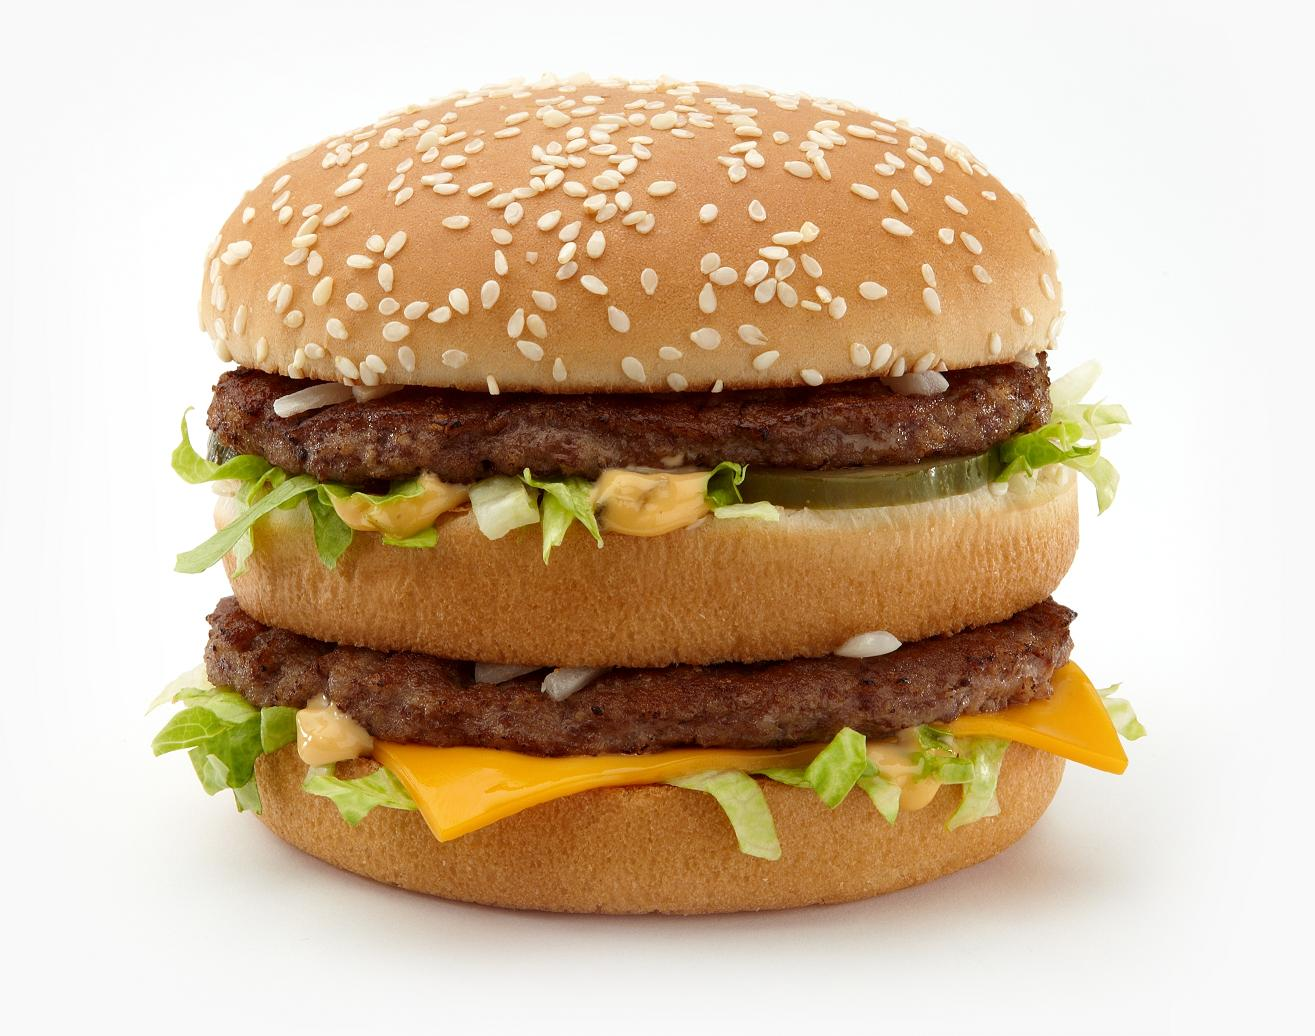 El Big Mac de McDonald's cumple medio siglo de vida.